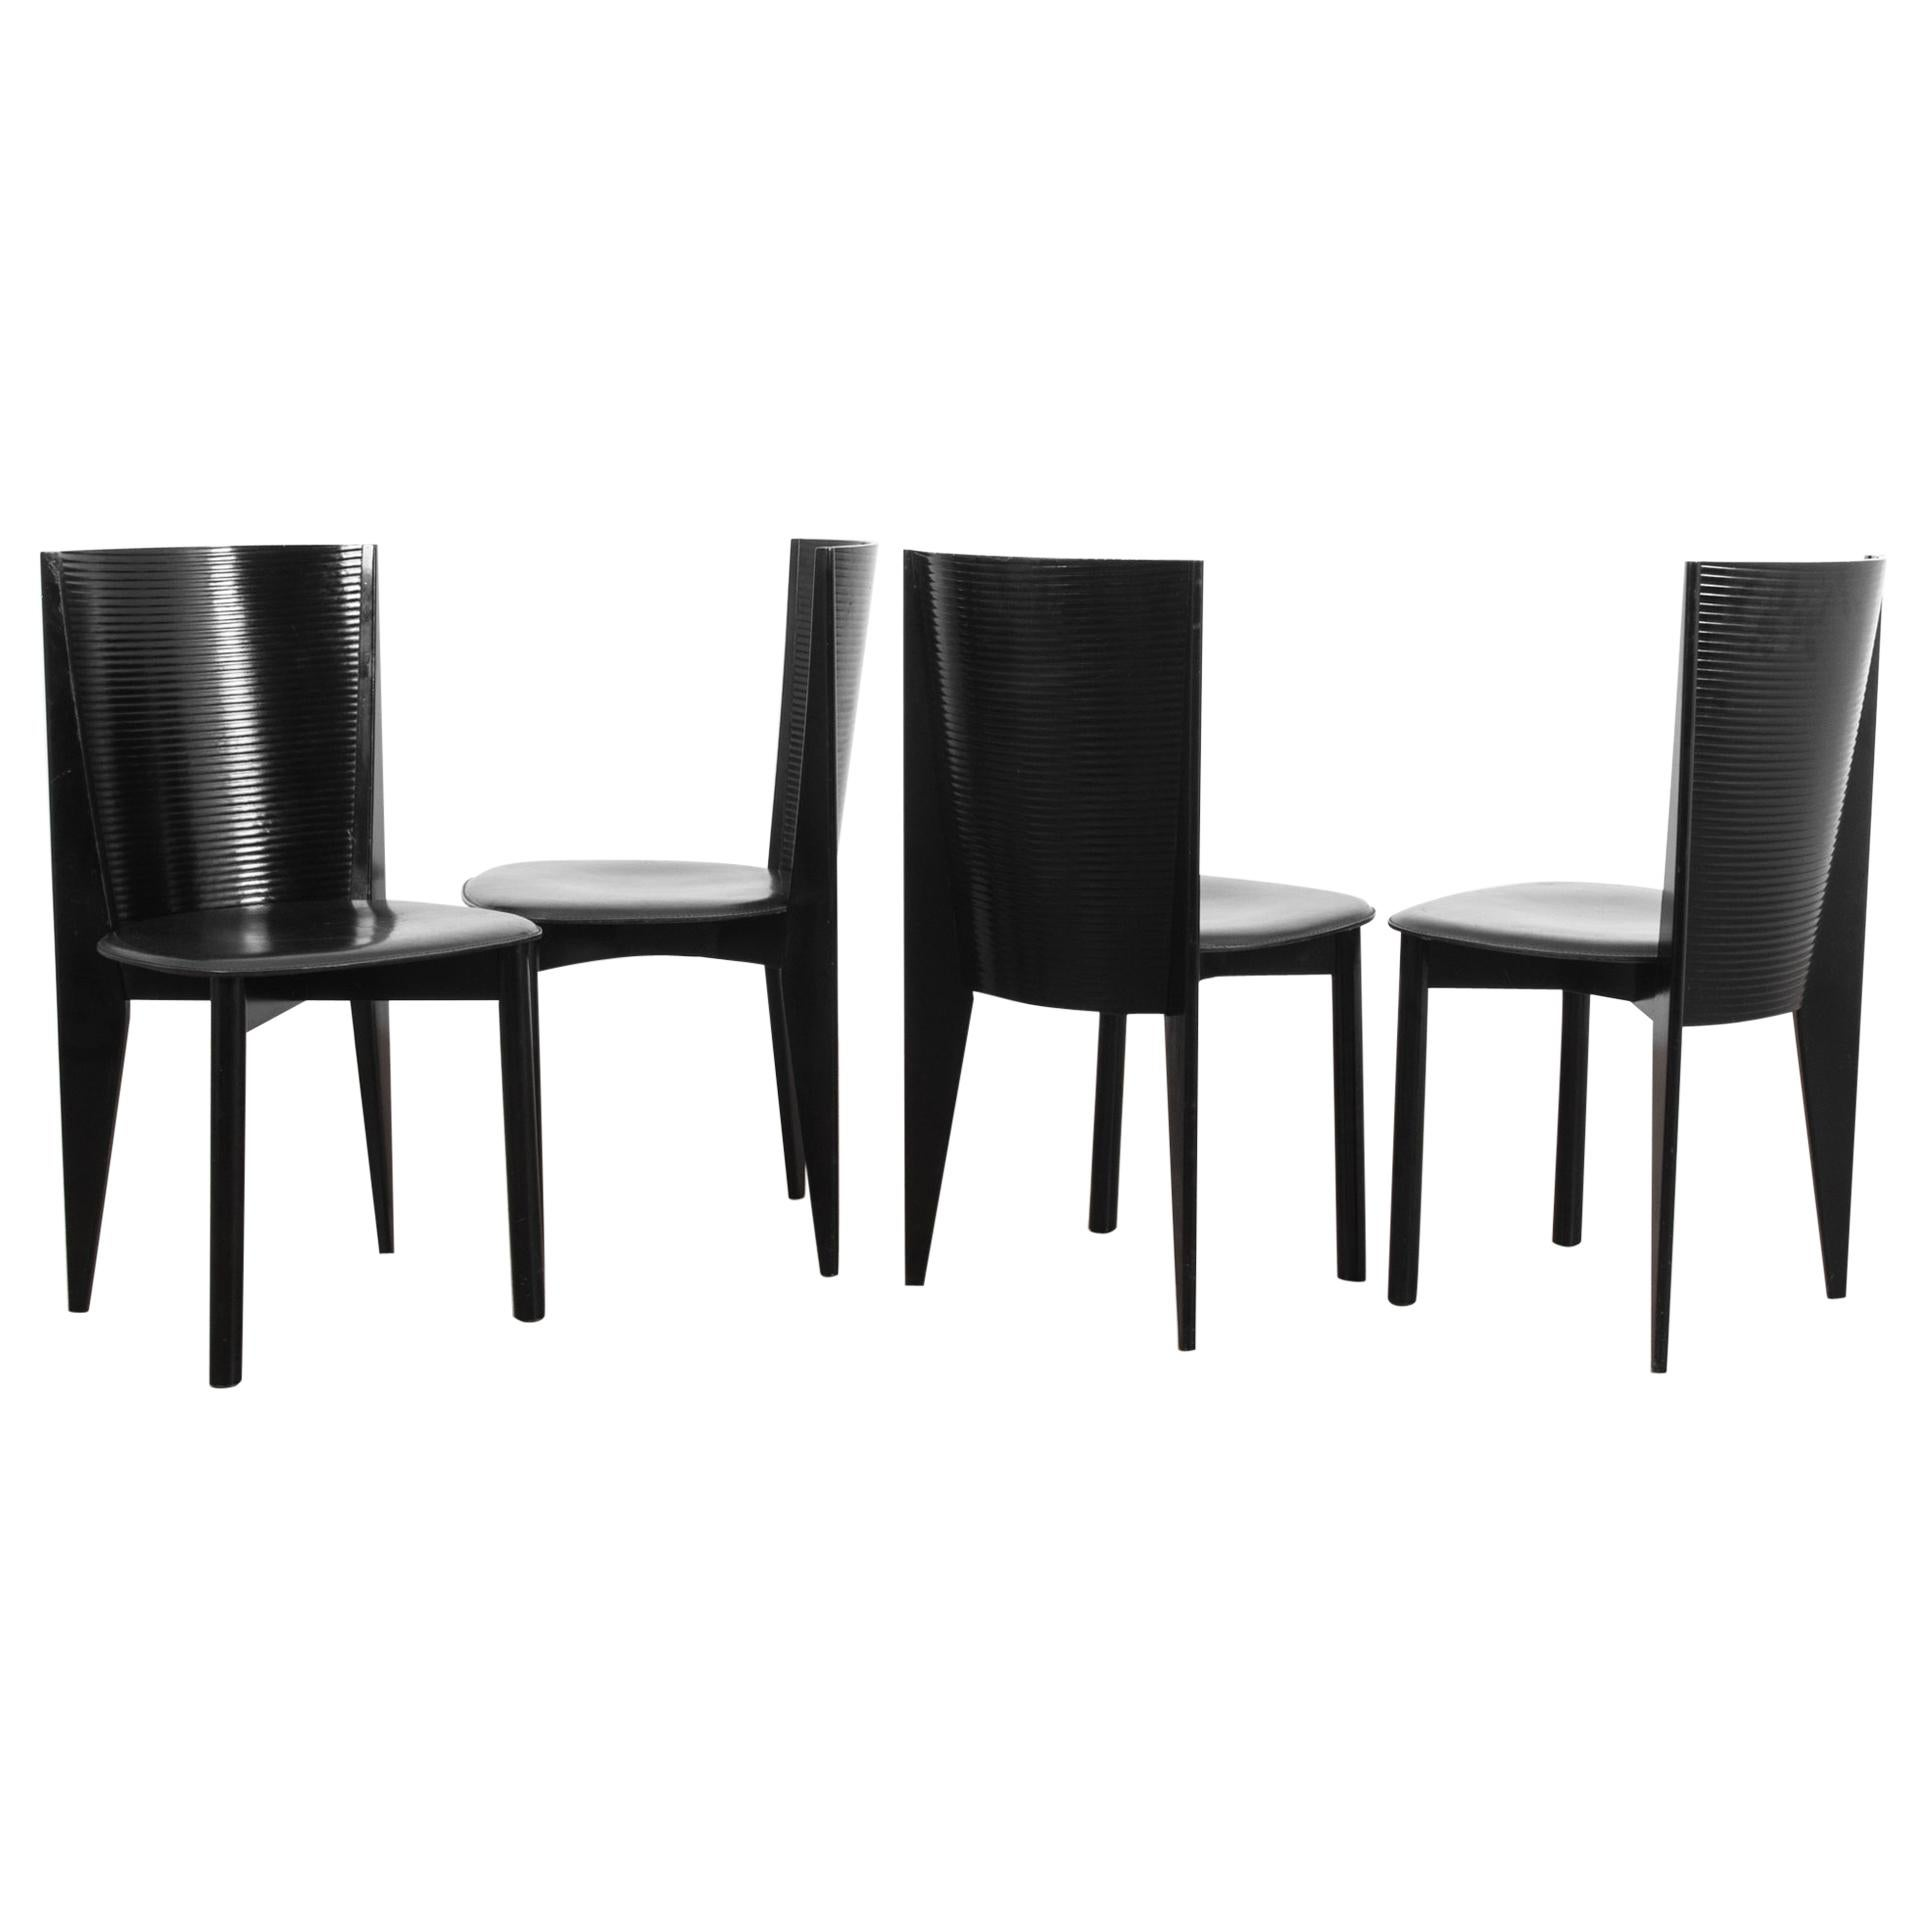 1980s Calligaris Dining Chairs, Set of Four